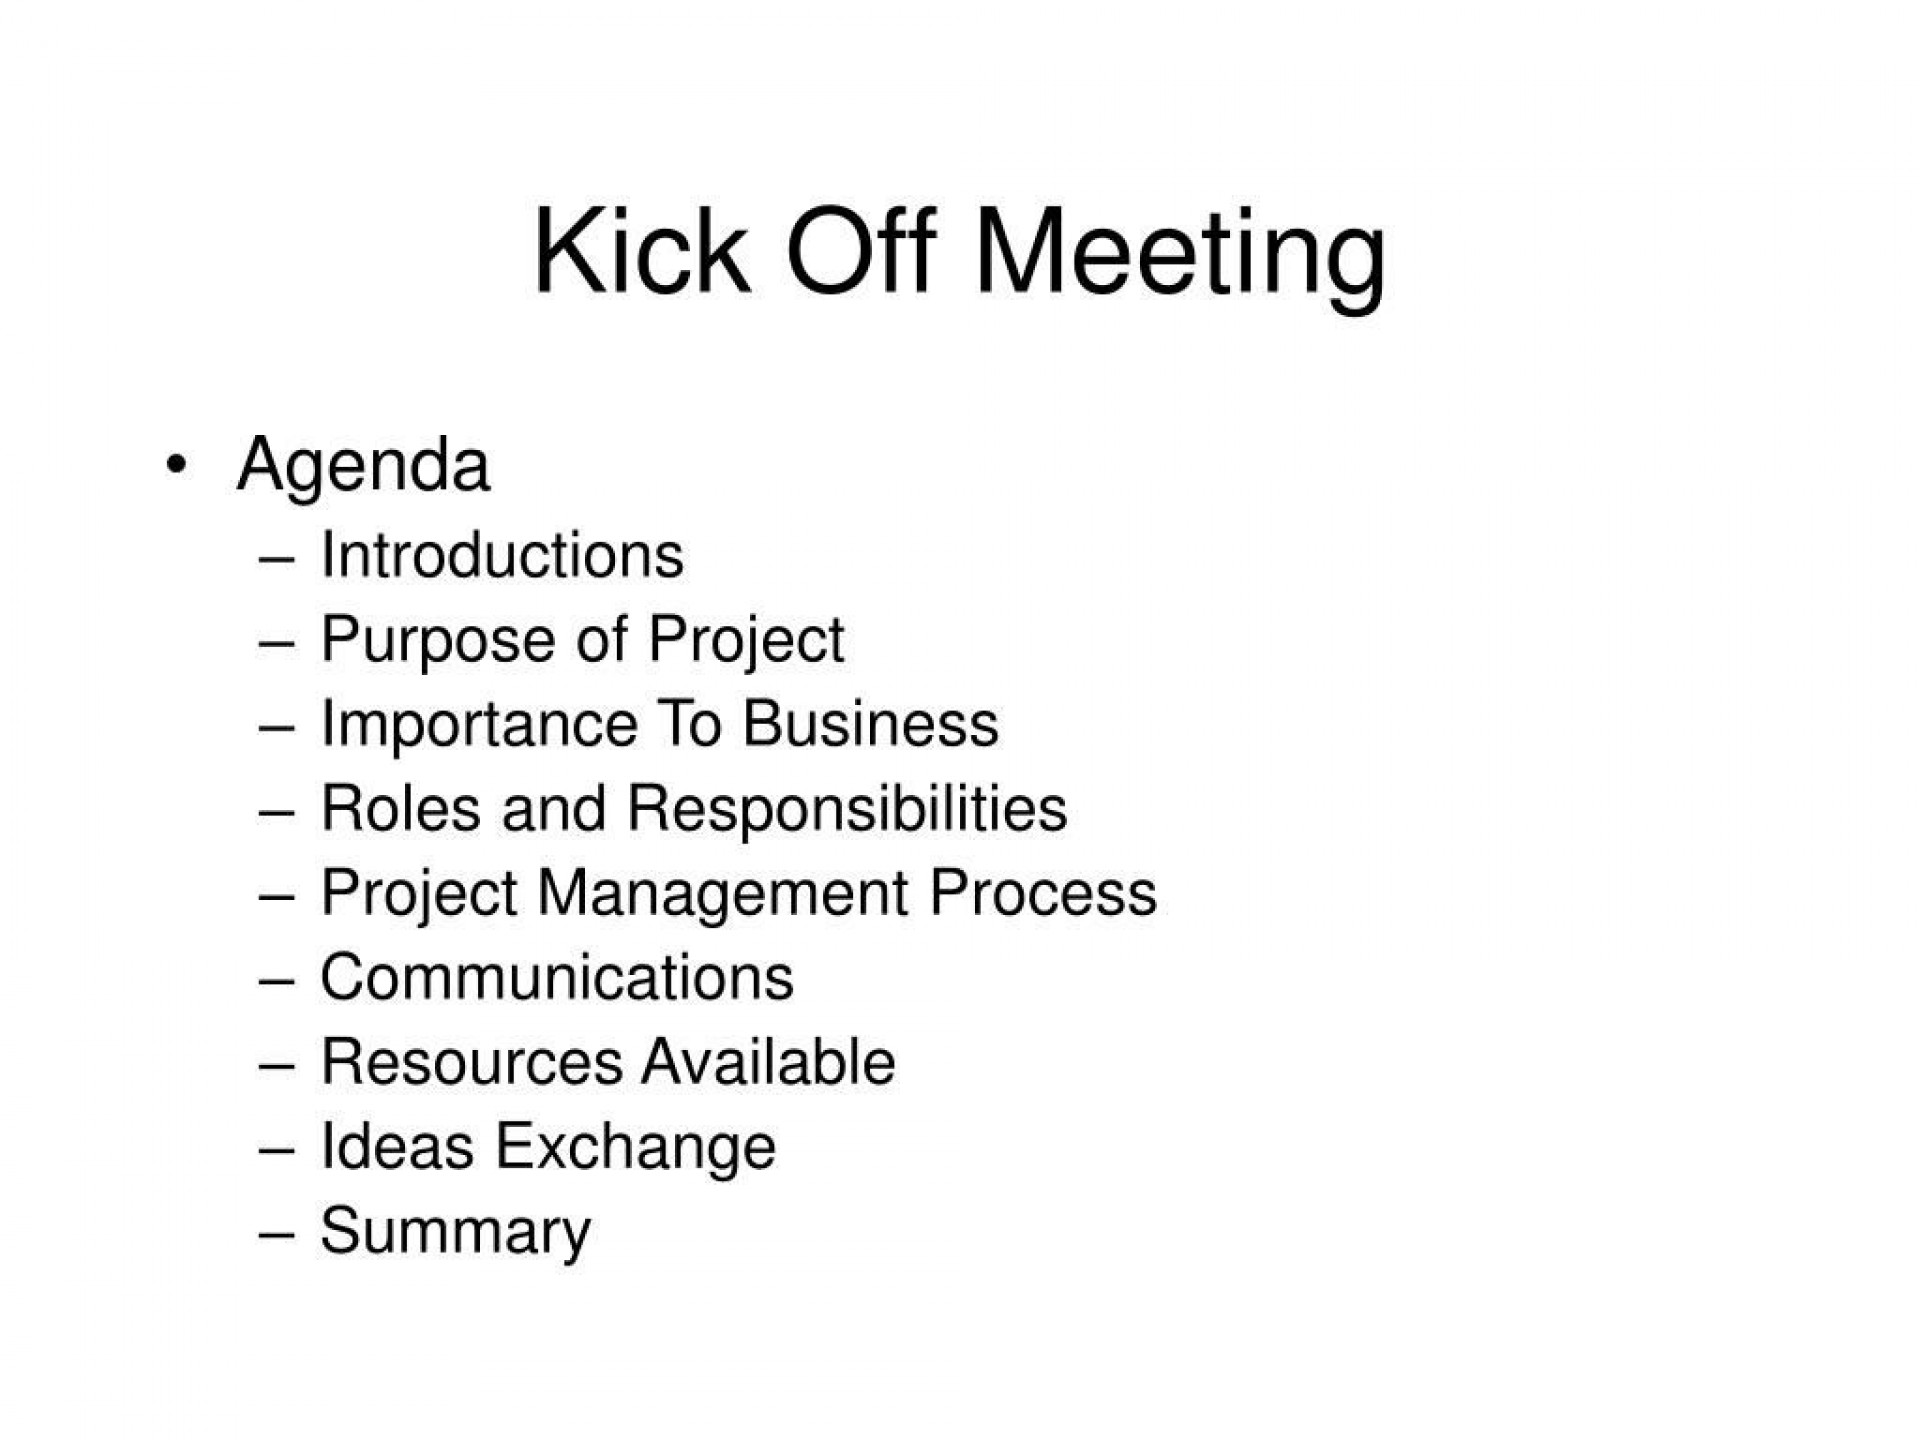 007 Dreaded Project Management Kickoff Meeting Template High Resolution  Ppt1920